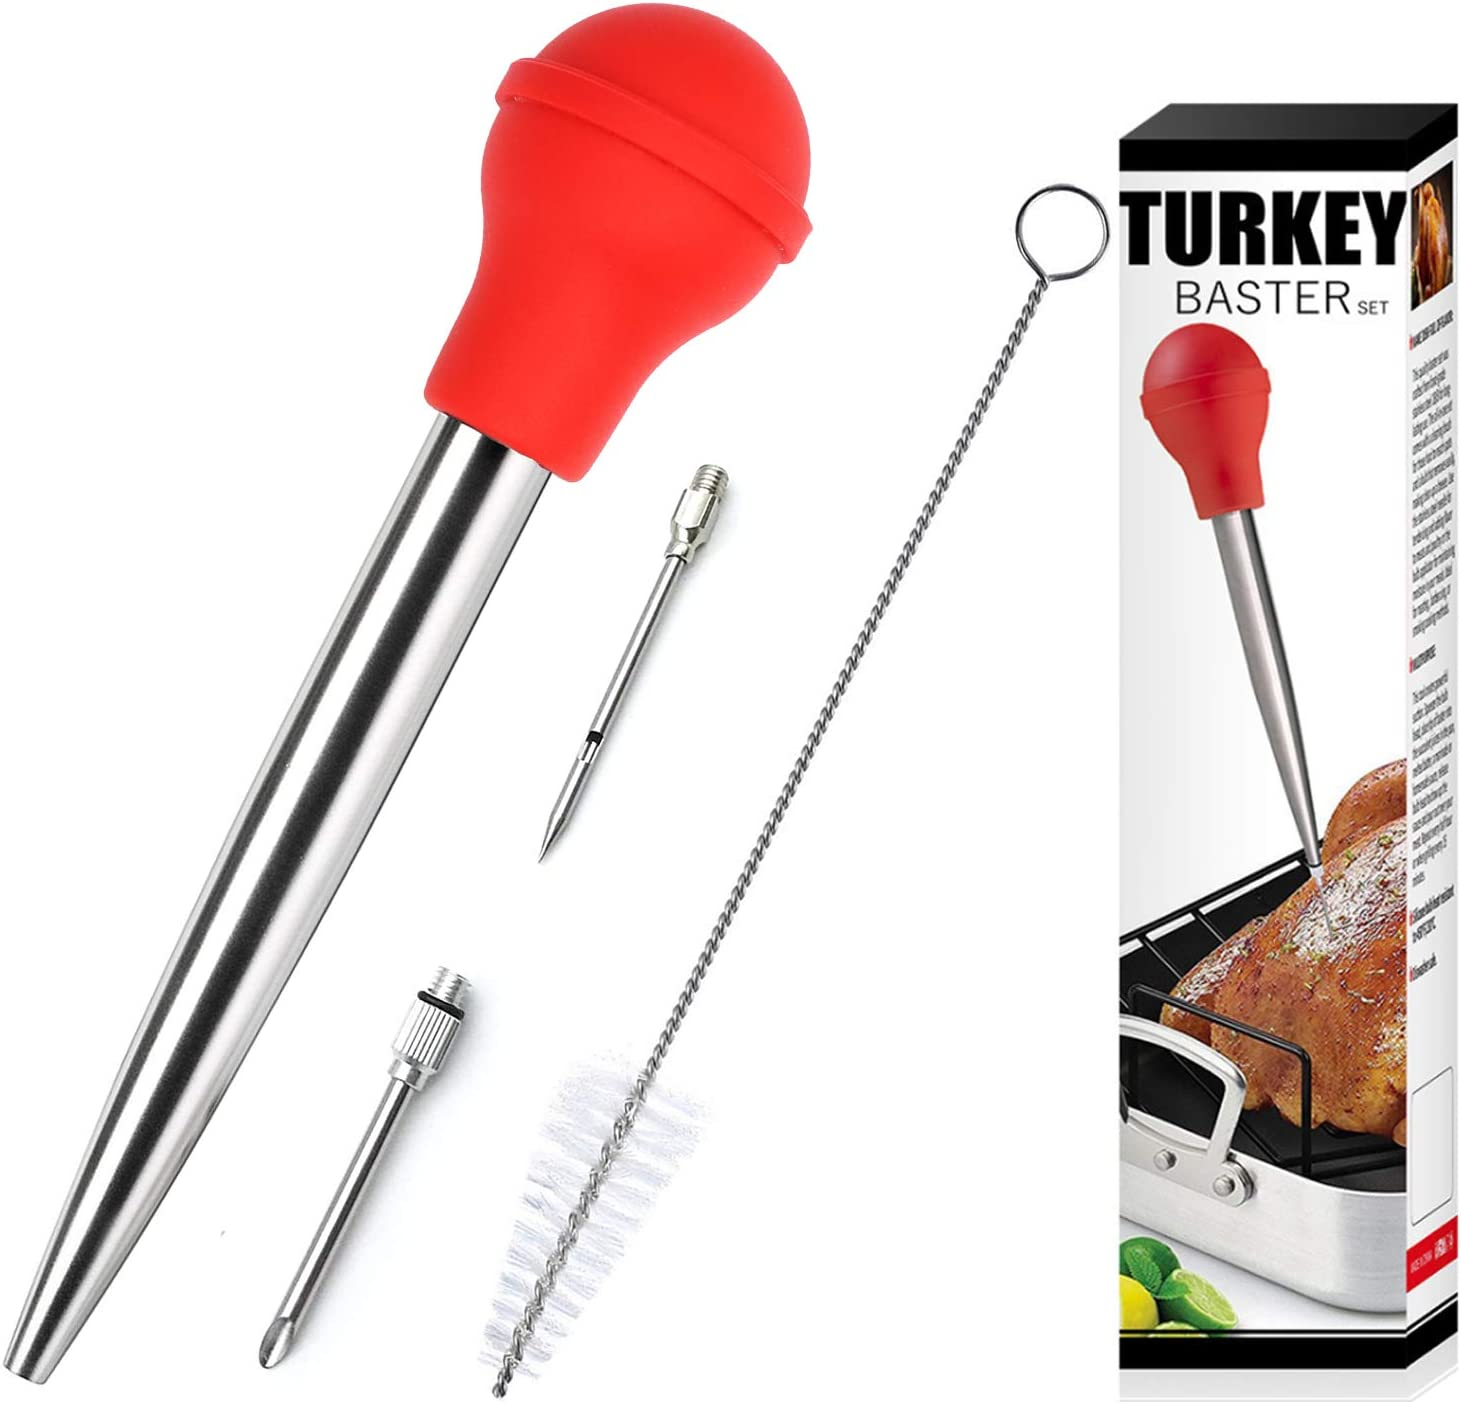 Stainless Steel Turkey Baster Cash special price With Cleaning - El Paso Mall S Grade Food Brush